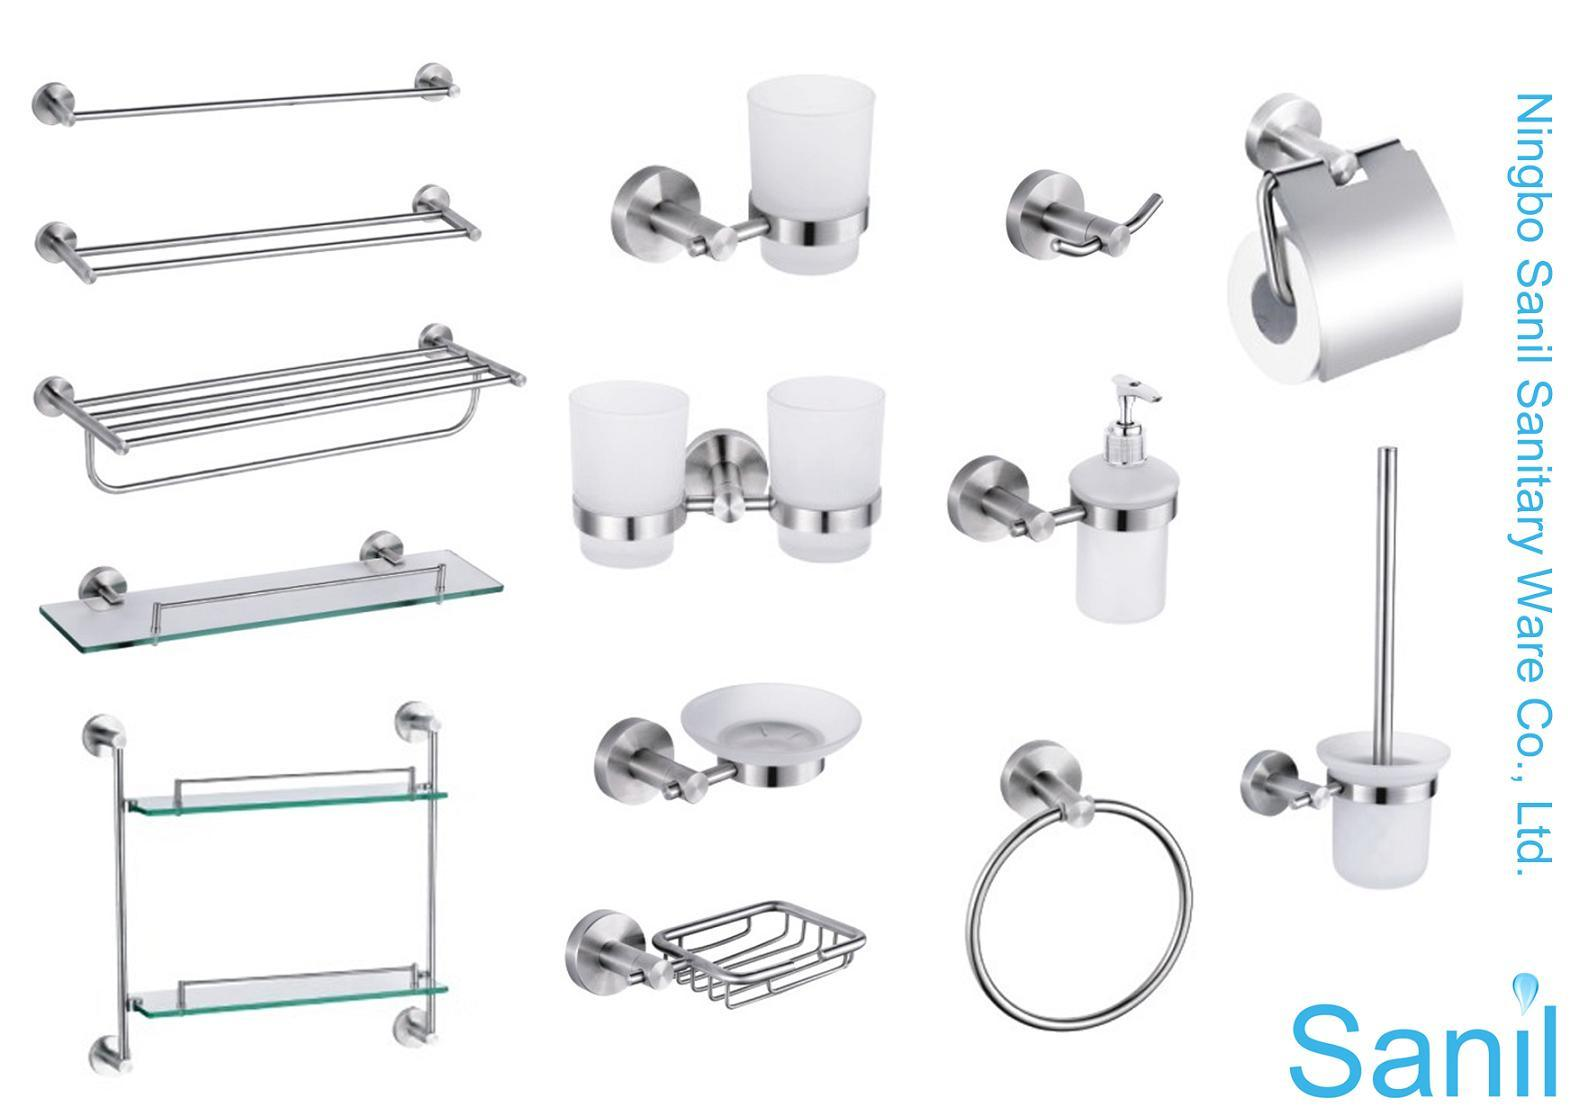 China 6pcs stainless steel bath accessories kits sl 51300 for Bathroom accessories fitting